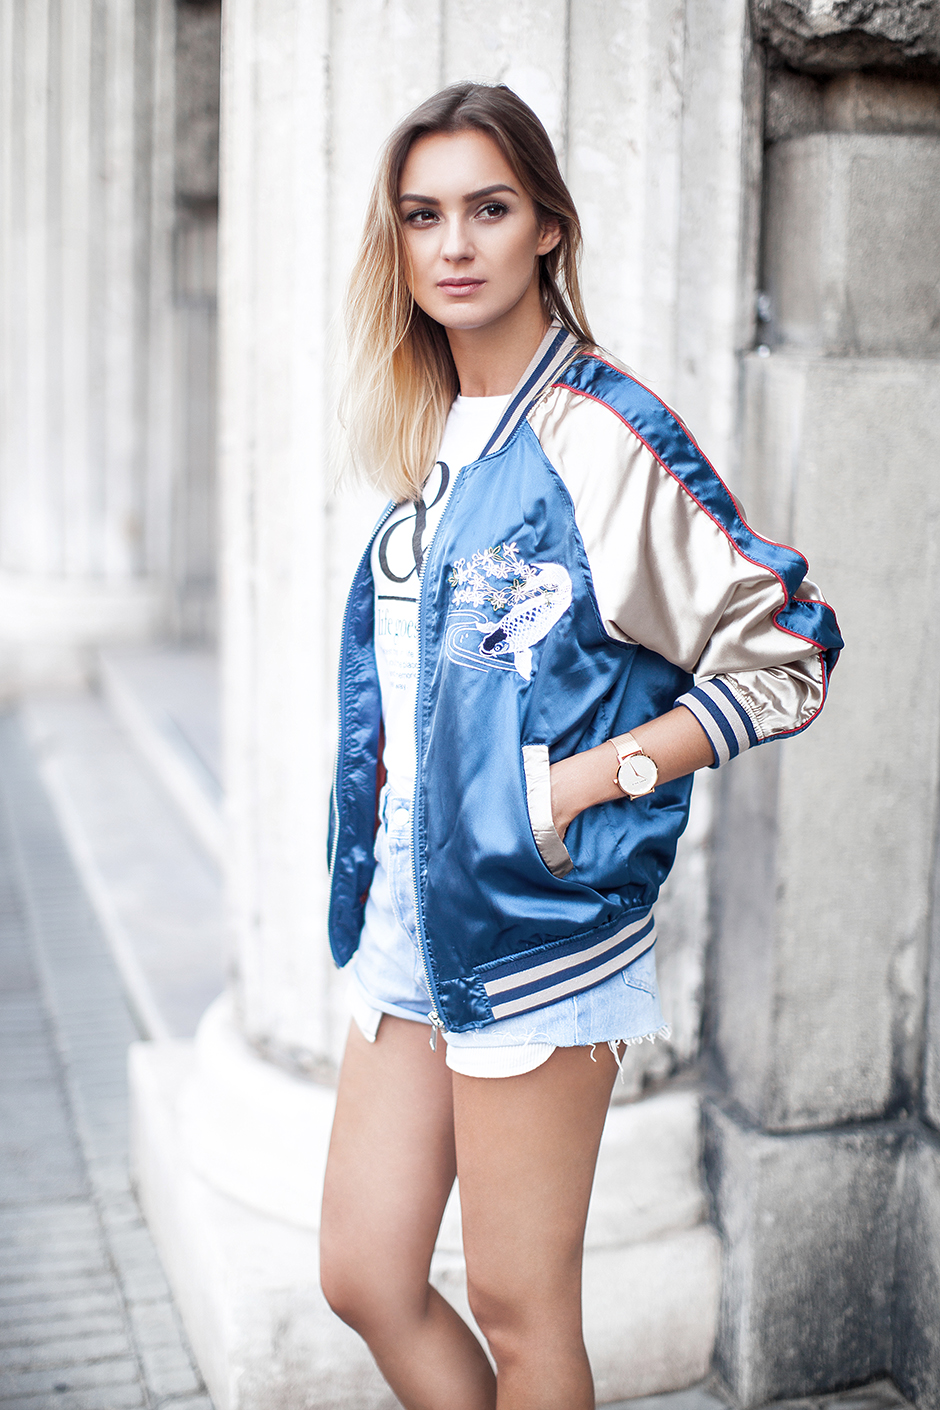 fashion-blogger-embroidered-bomber-jacket-outfit